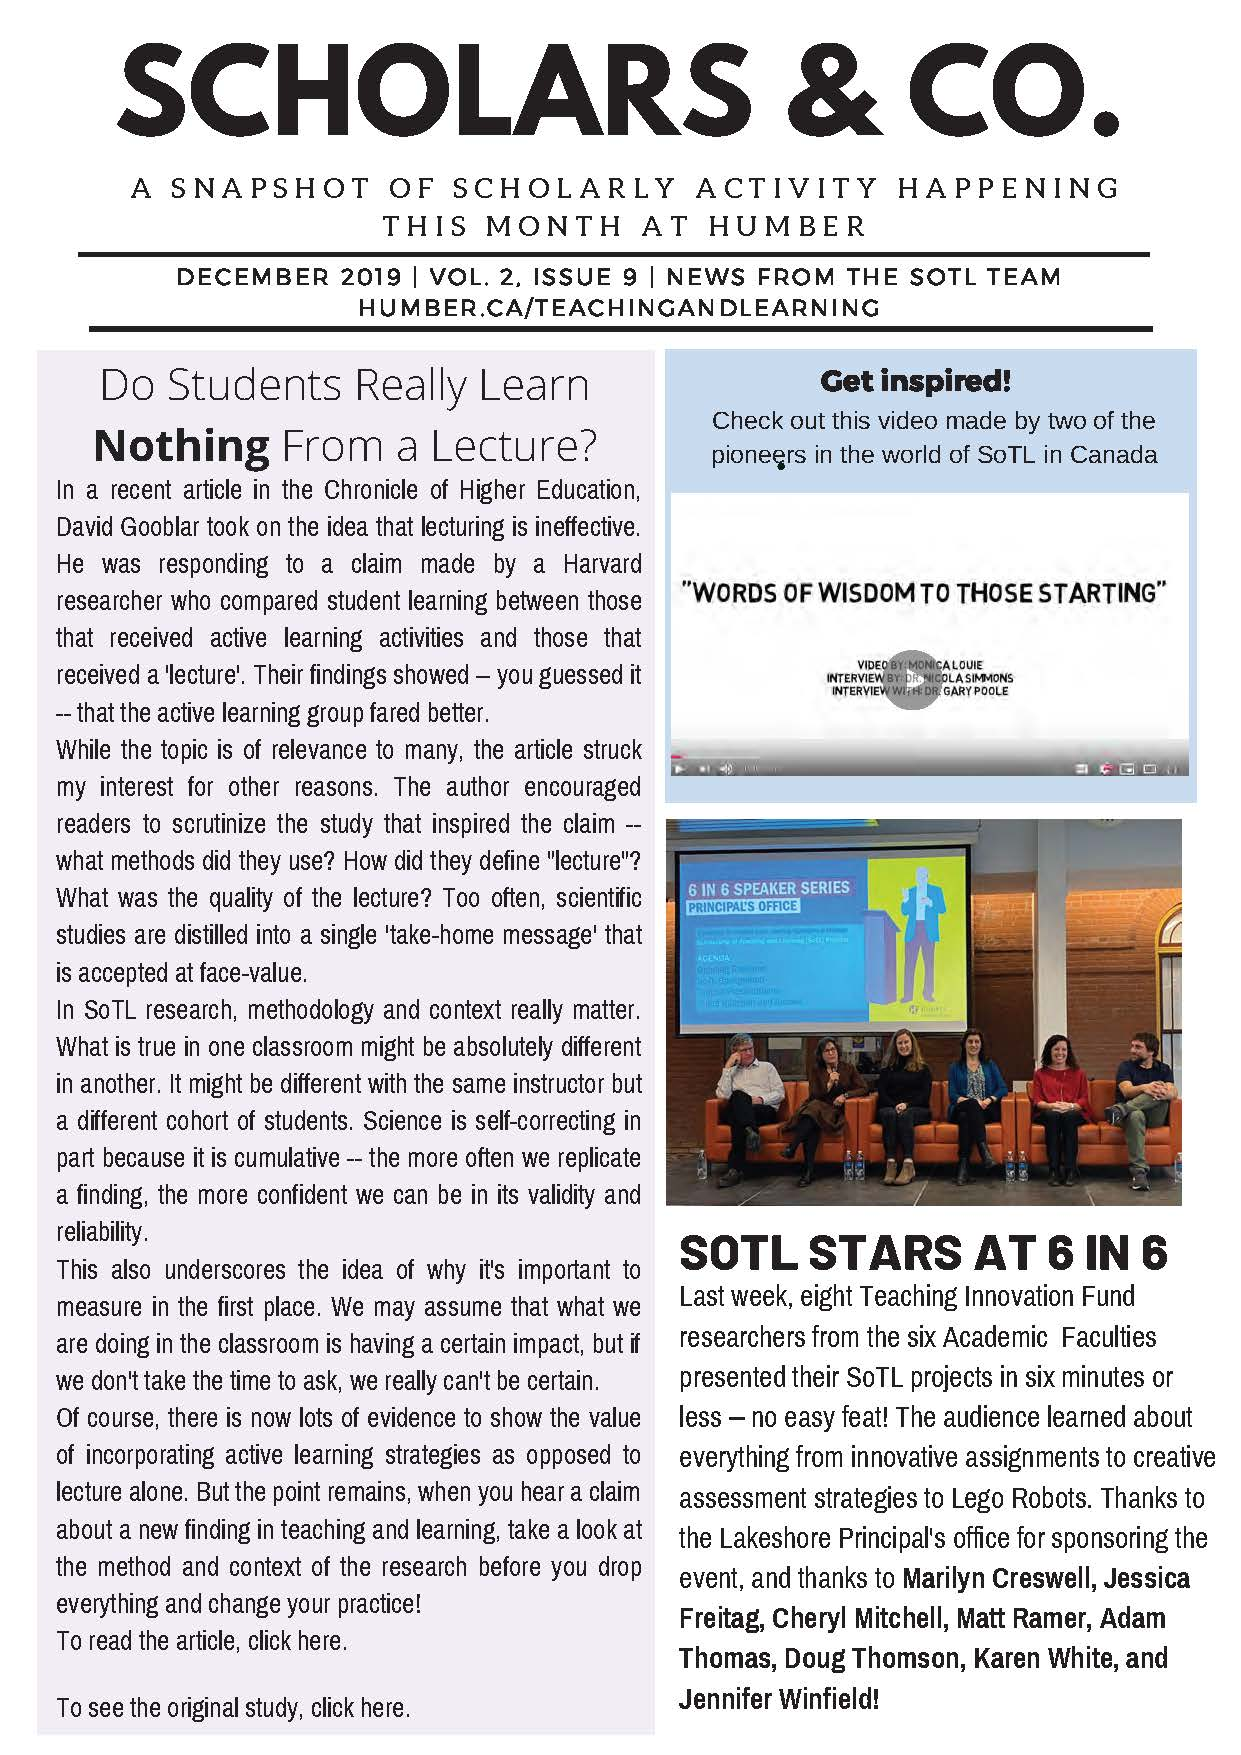 Front page of the SoTL Newsletter